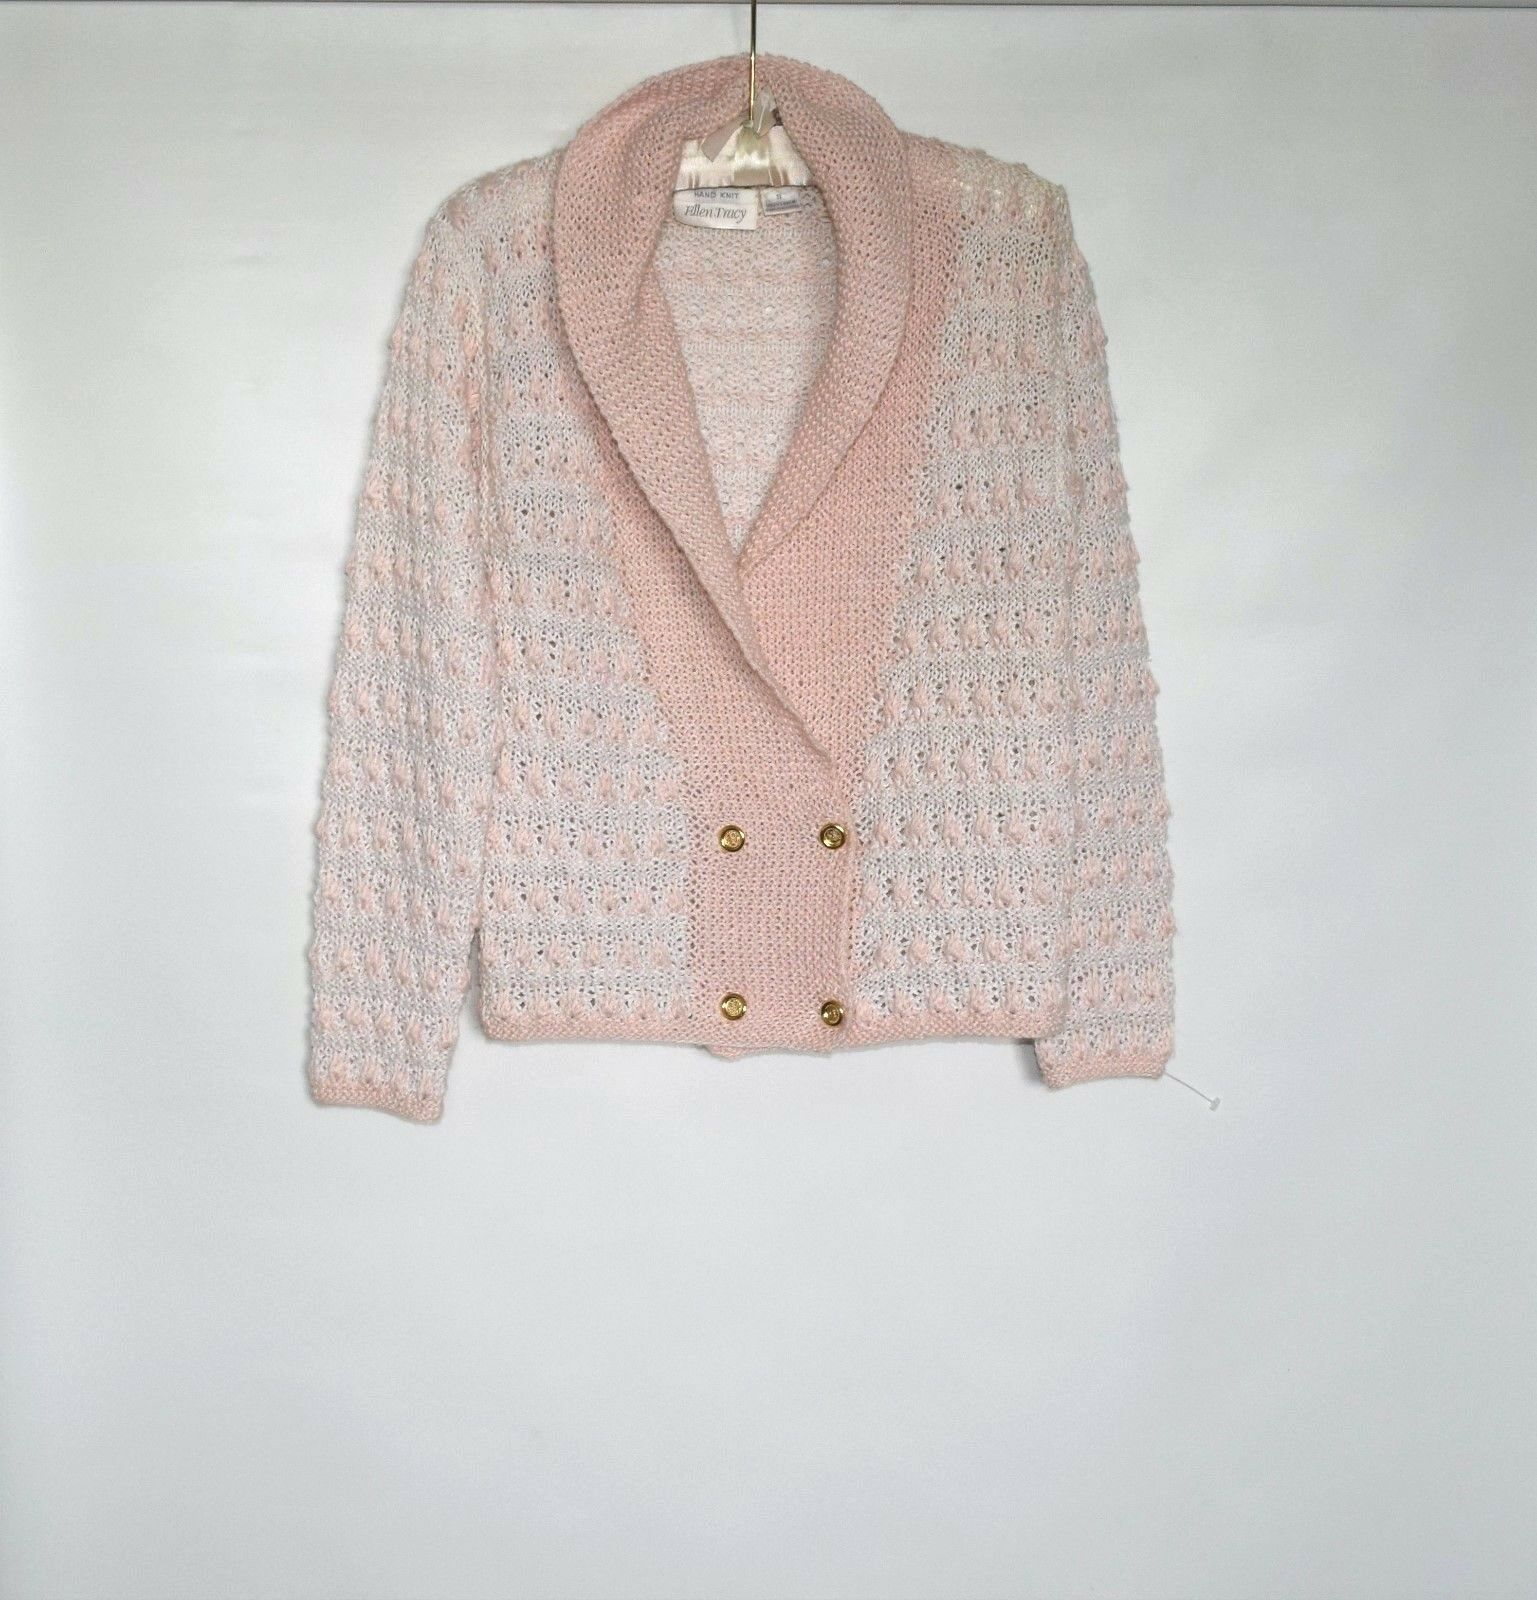 NWOT ELLEN TRACY Knitted by Hand 100% Linen Pink Womens Cardigan Sweater Size S